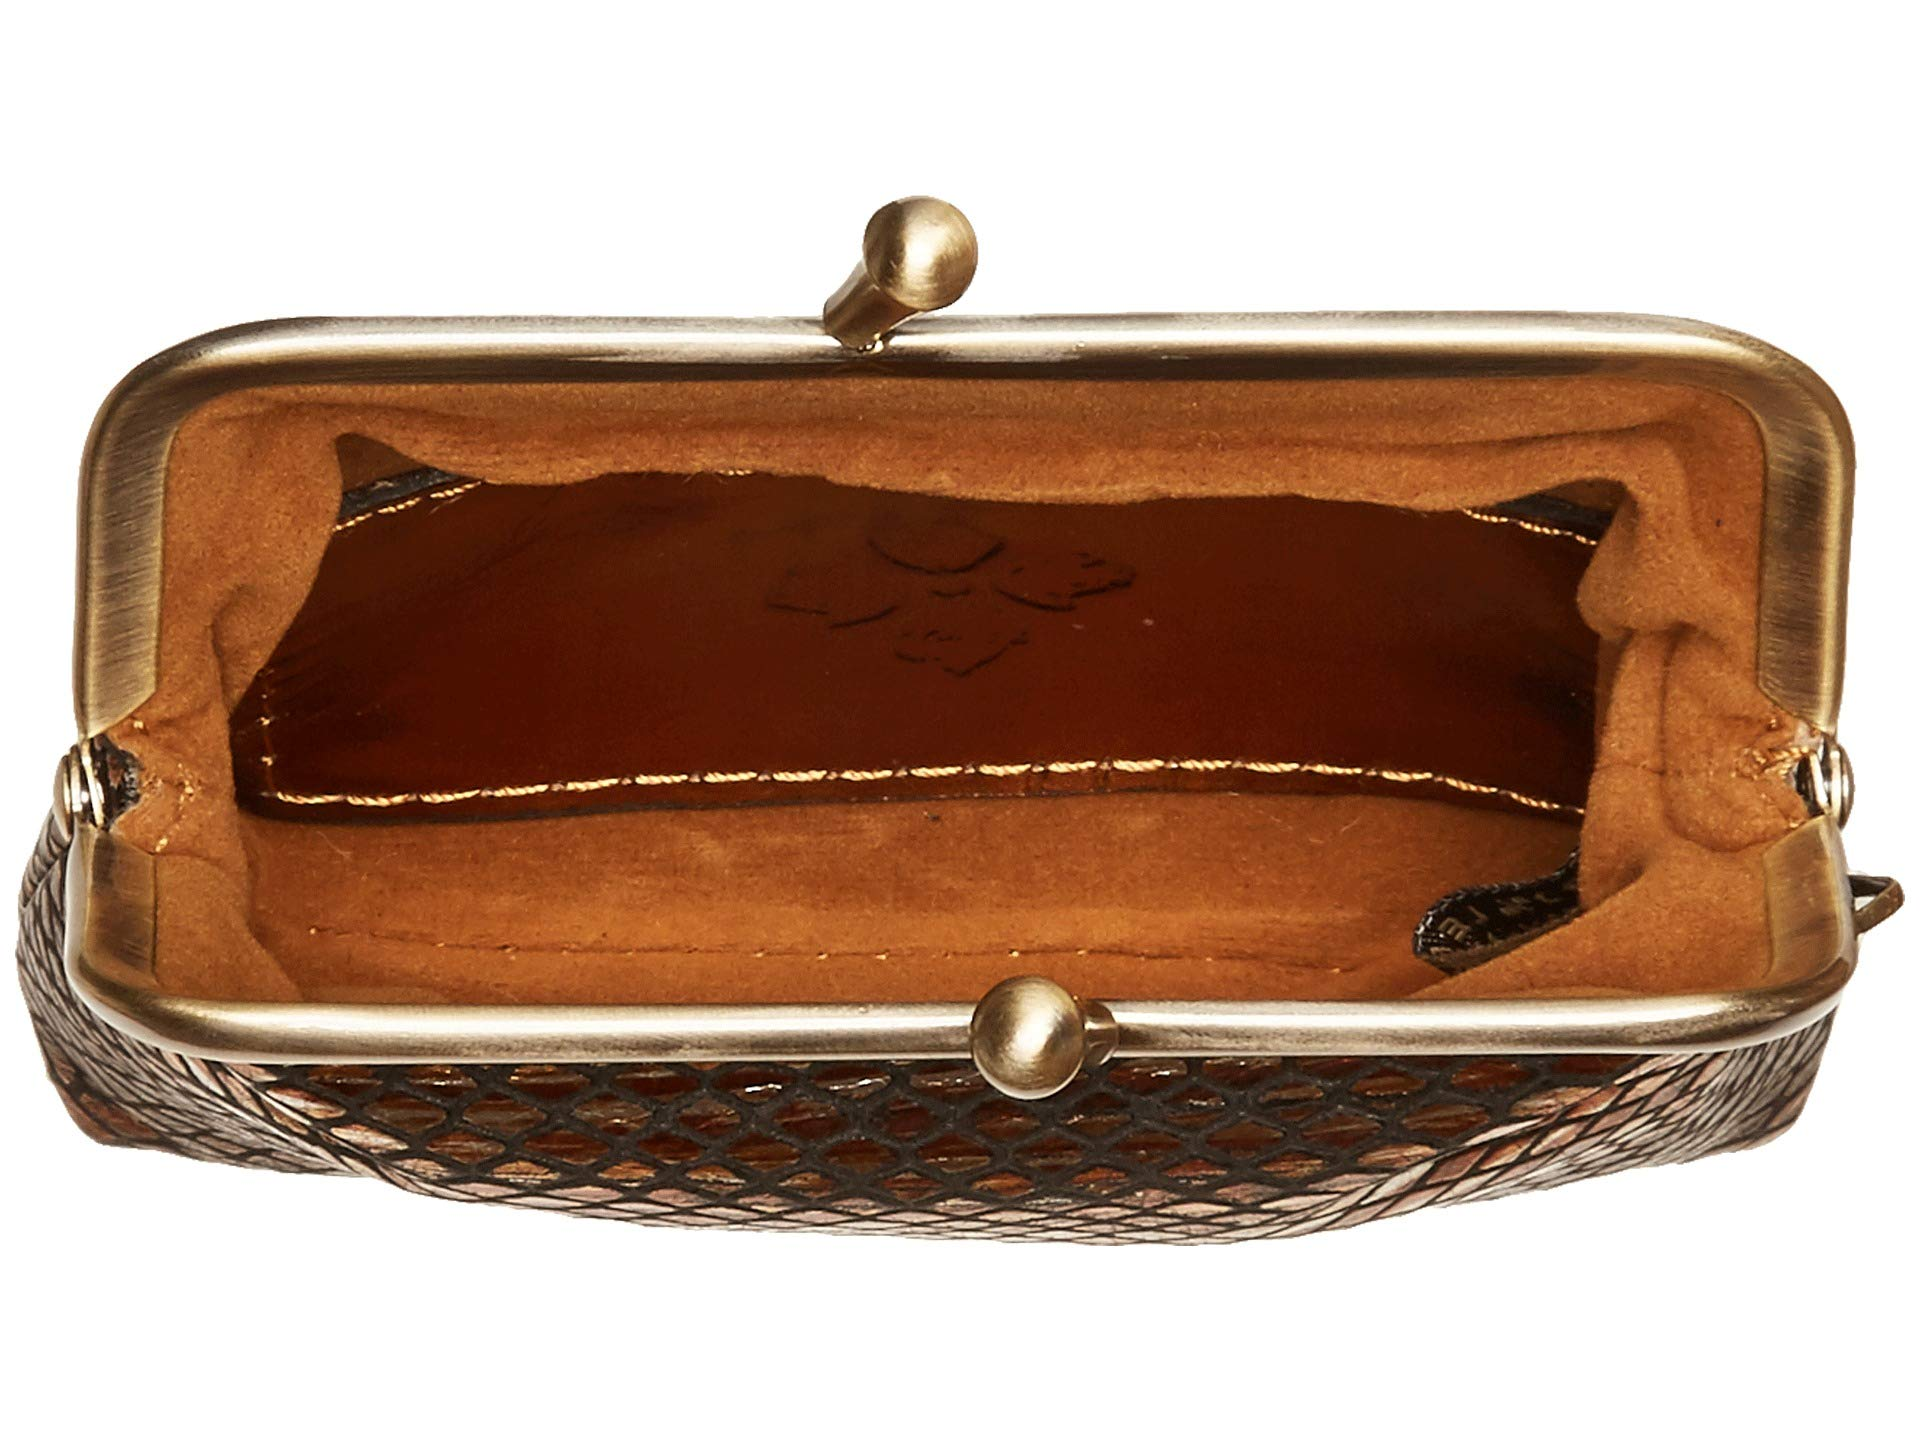 Patricia Nash Women's Large Borse Coin Purse Gold 1 One Size by Patricia Nash (Image #4)